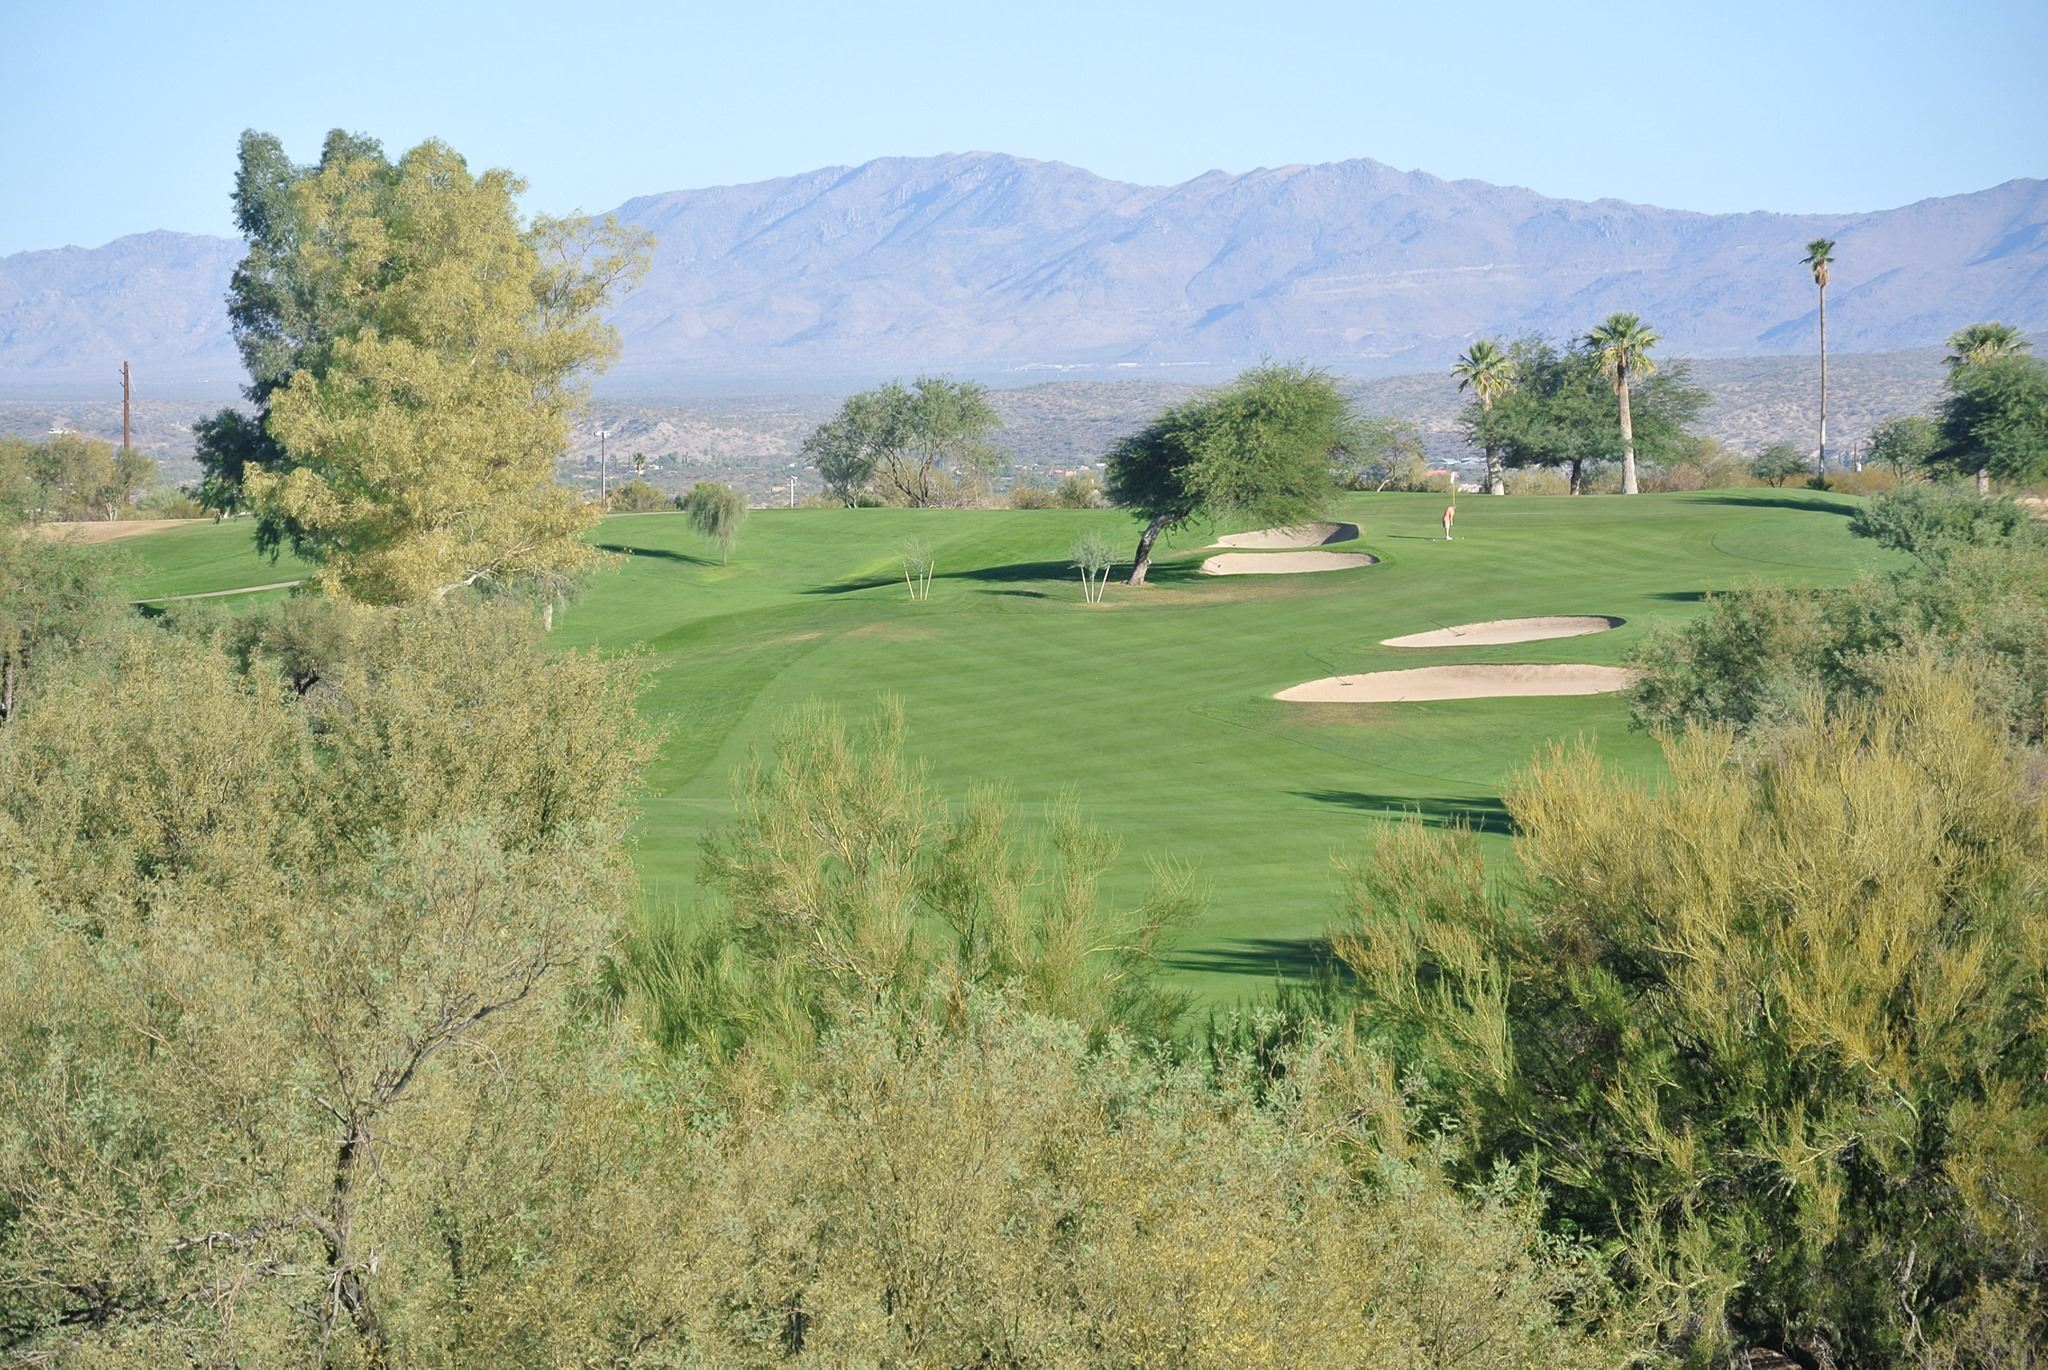 Los Caballeros Golf Course Opens in new window